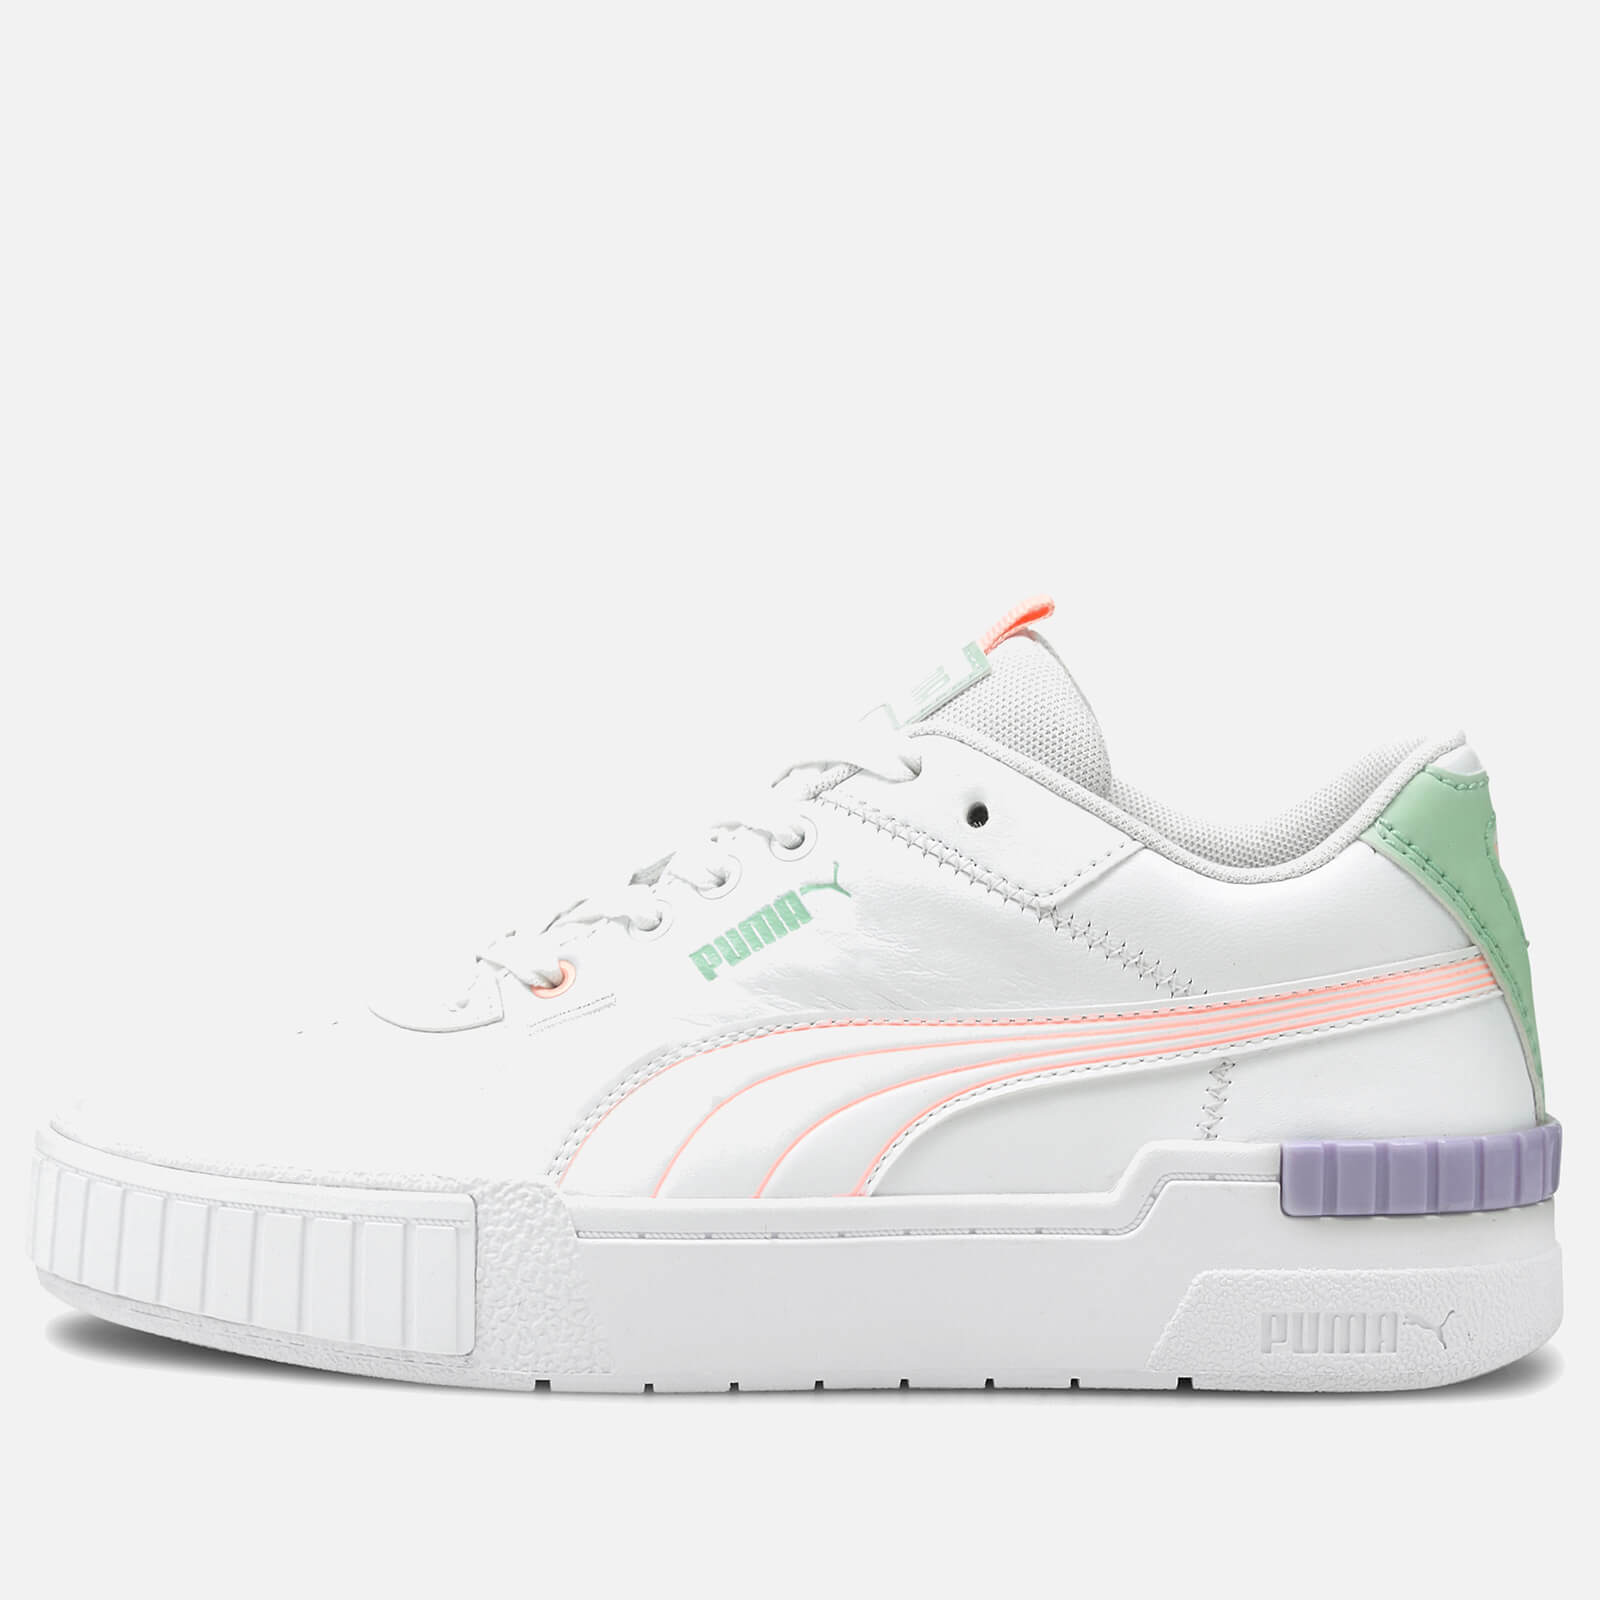 Click to view product details and reviews for Puma Womens Cali Sport Pastel Mix Trainers Puma White Elektro Peach Mist Green Light Lavender Uk 3.